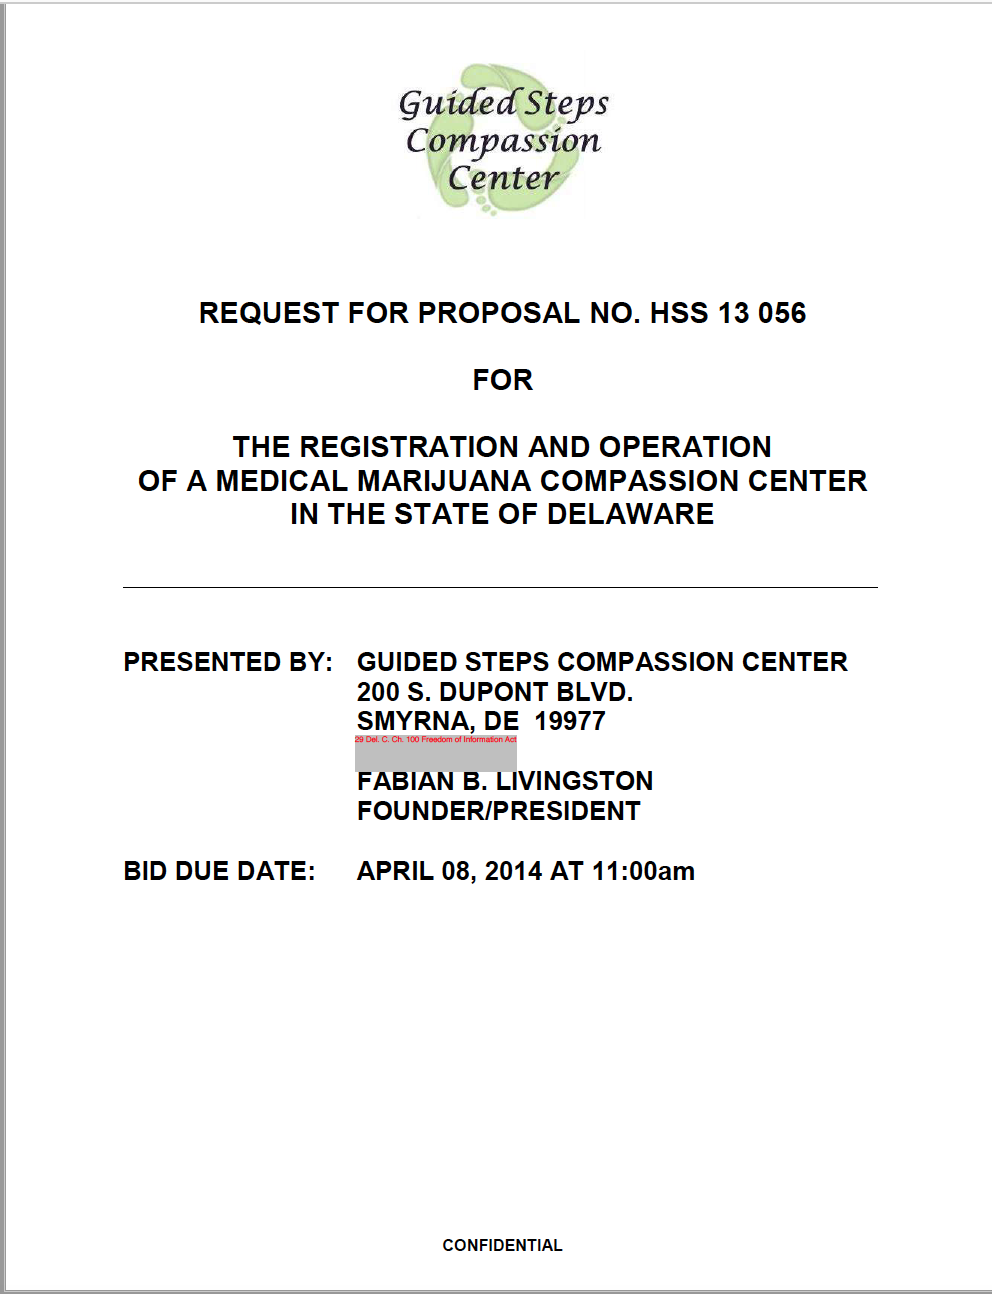 Guided Steps Compassion Center.png